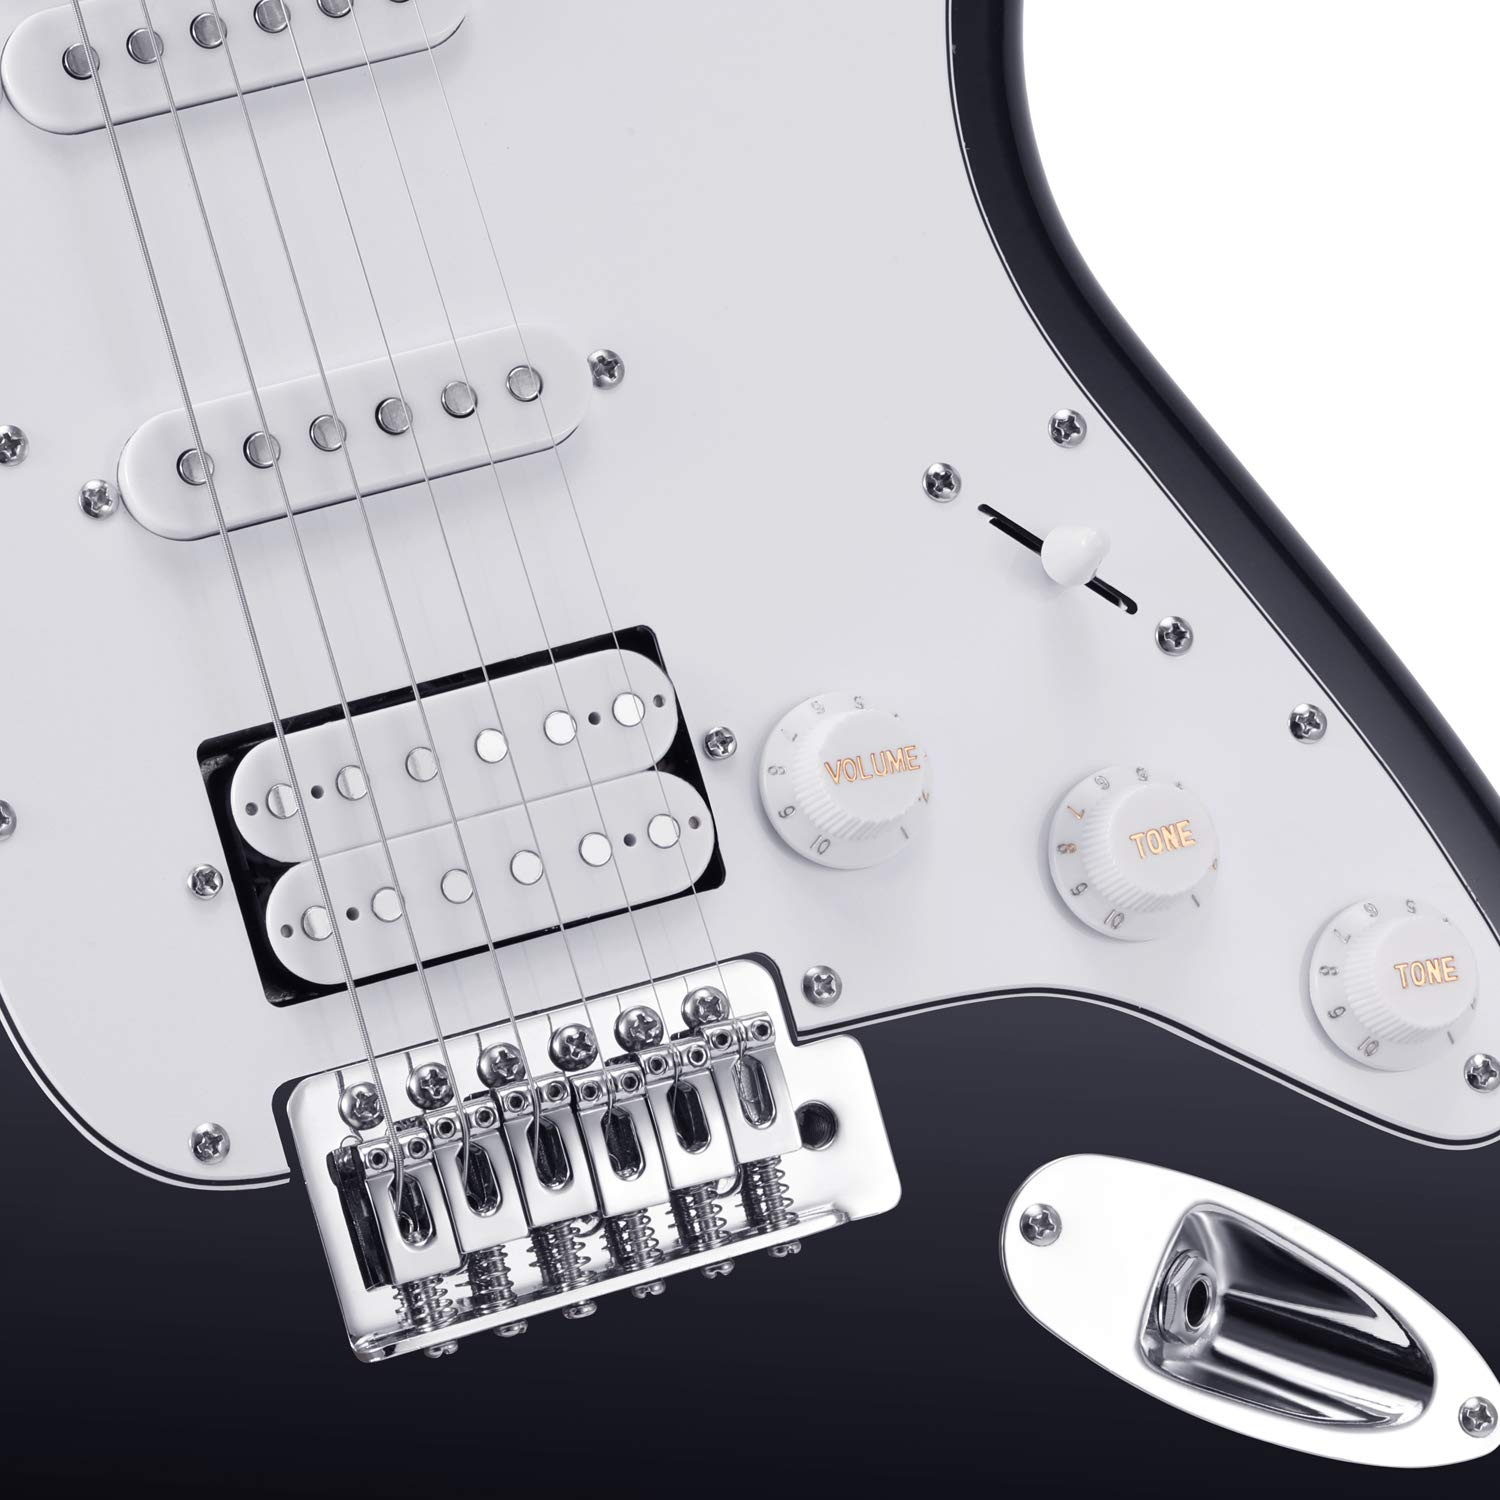 Close-up of the Body of the Donner DST-1B Black Electric Guitar